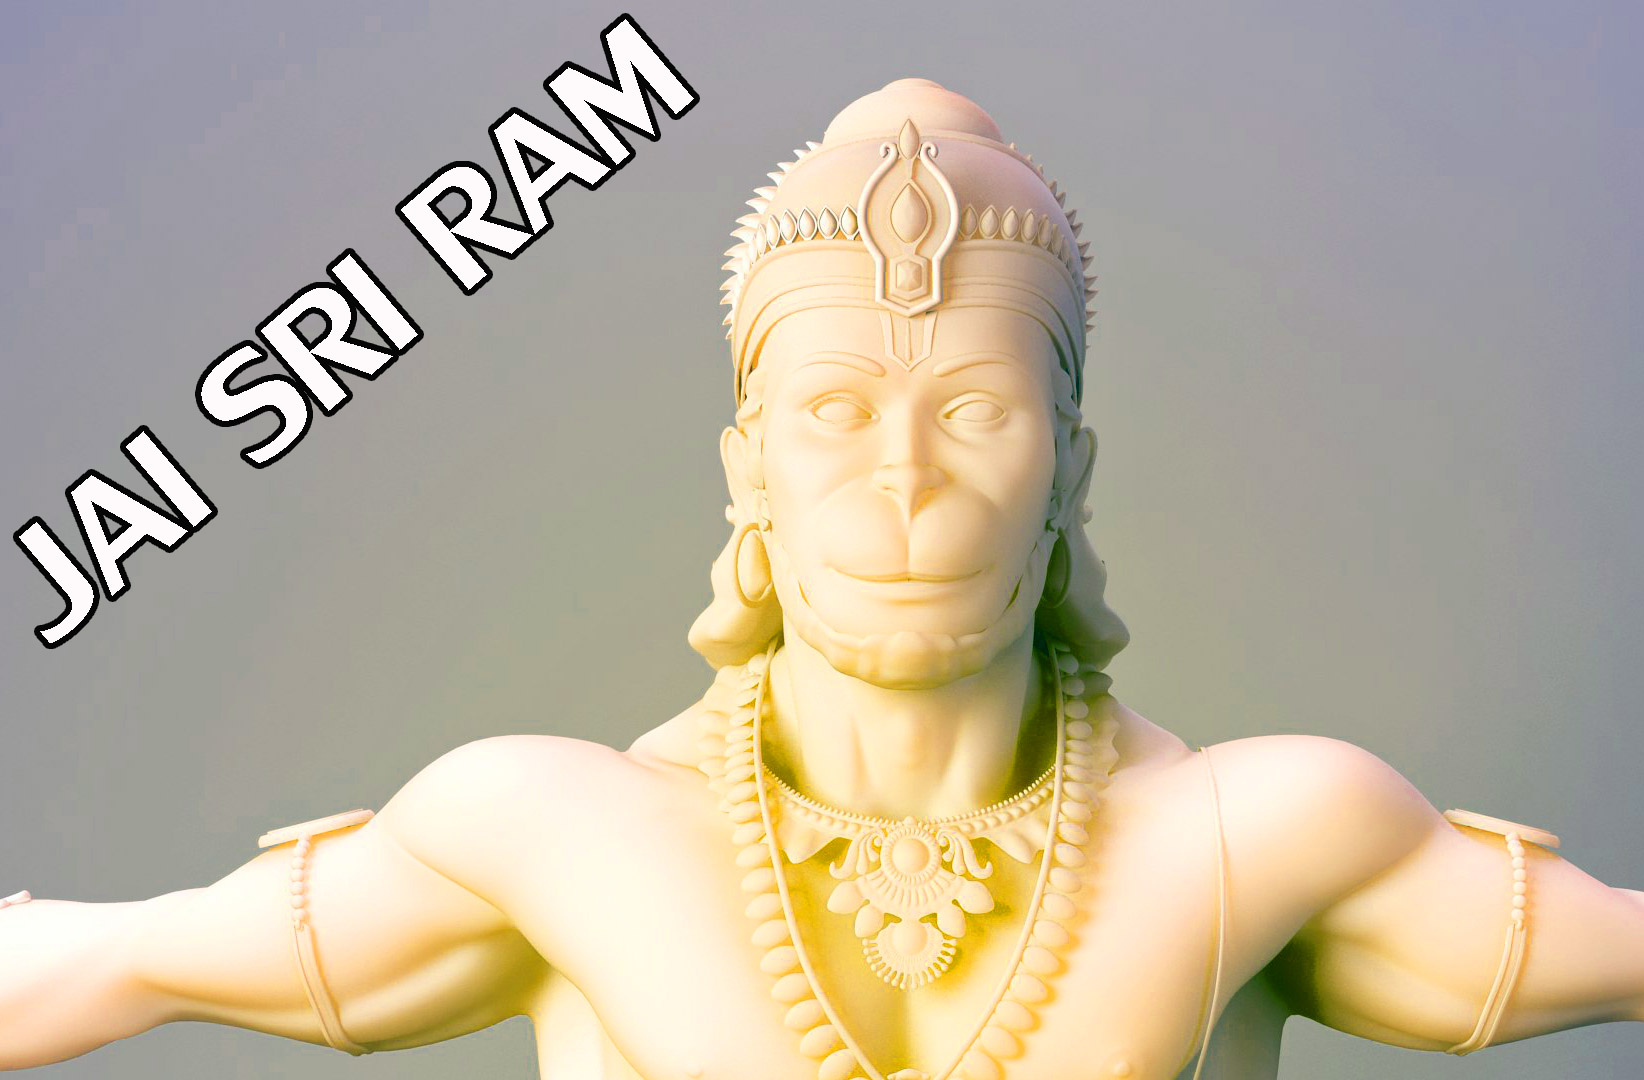 JAI SHRI RAM IMAGES WALLPAPER PHOTO DOWNLOAD